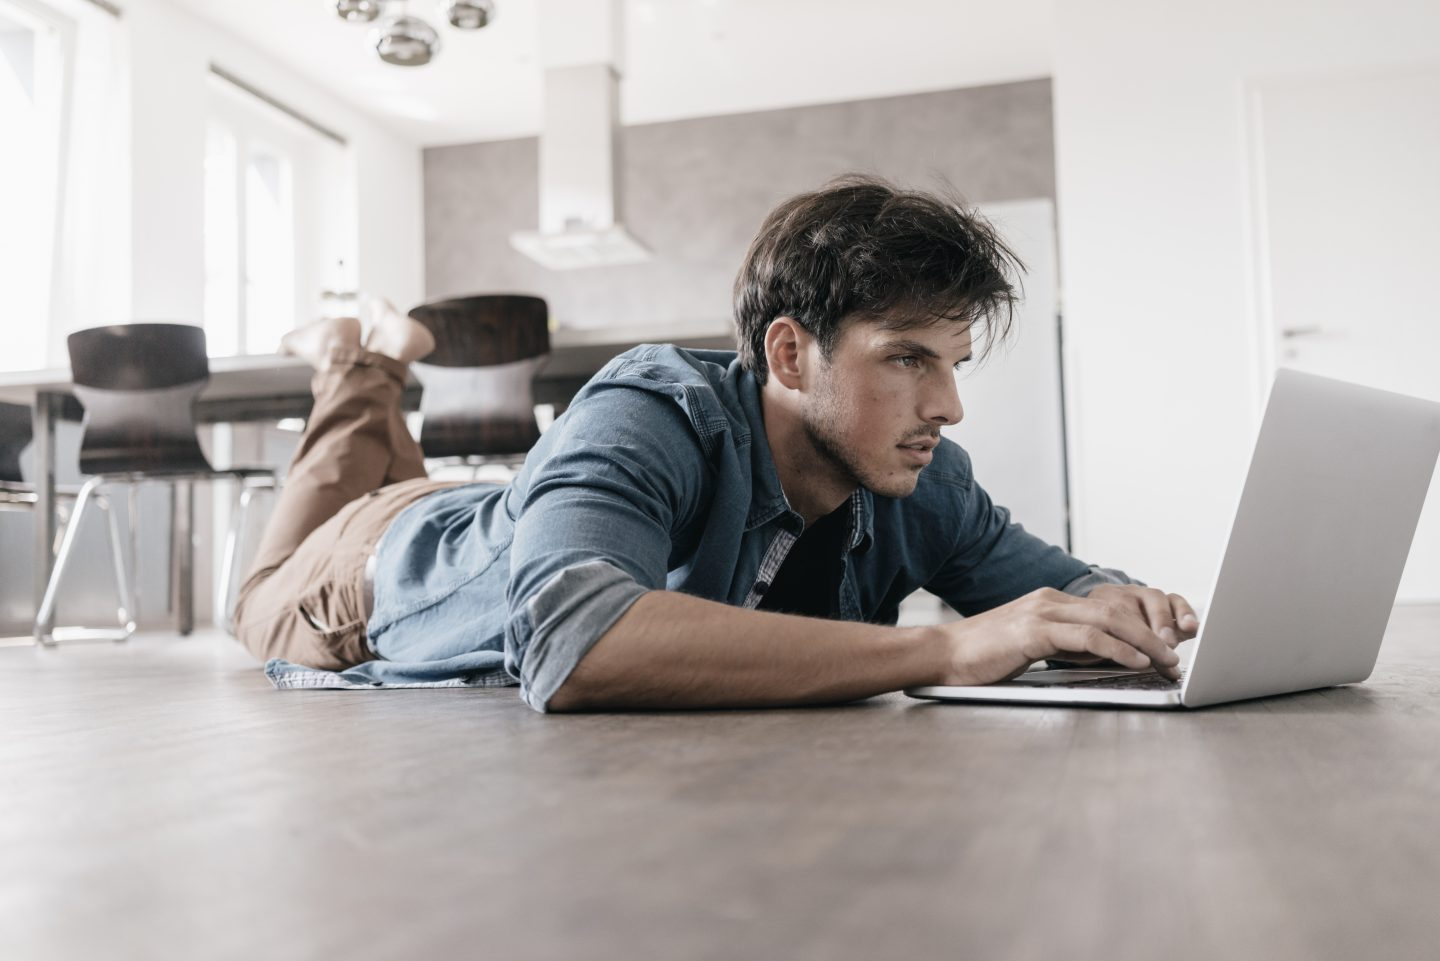 Man in blue shirt lying on the floor using laptop computer, working, studying, concentration, career, adidas, GamePlan A